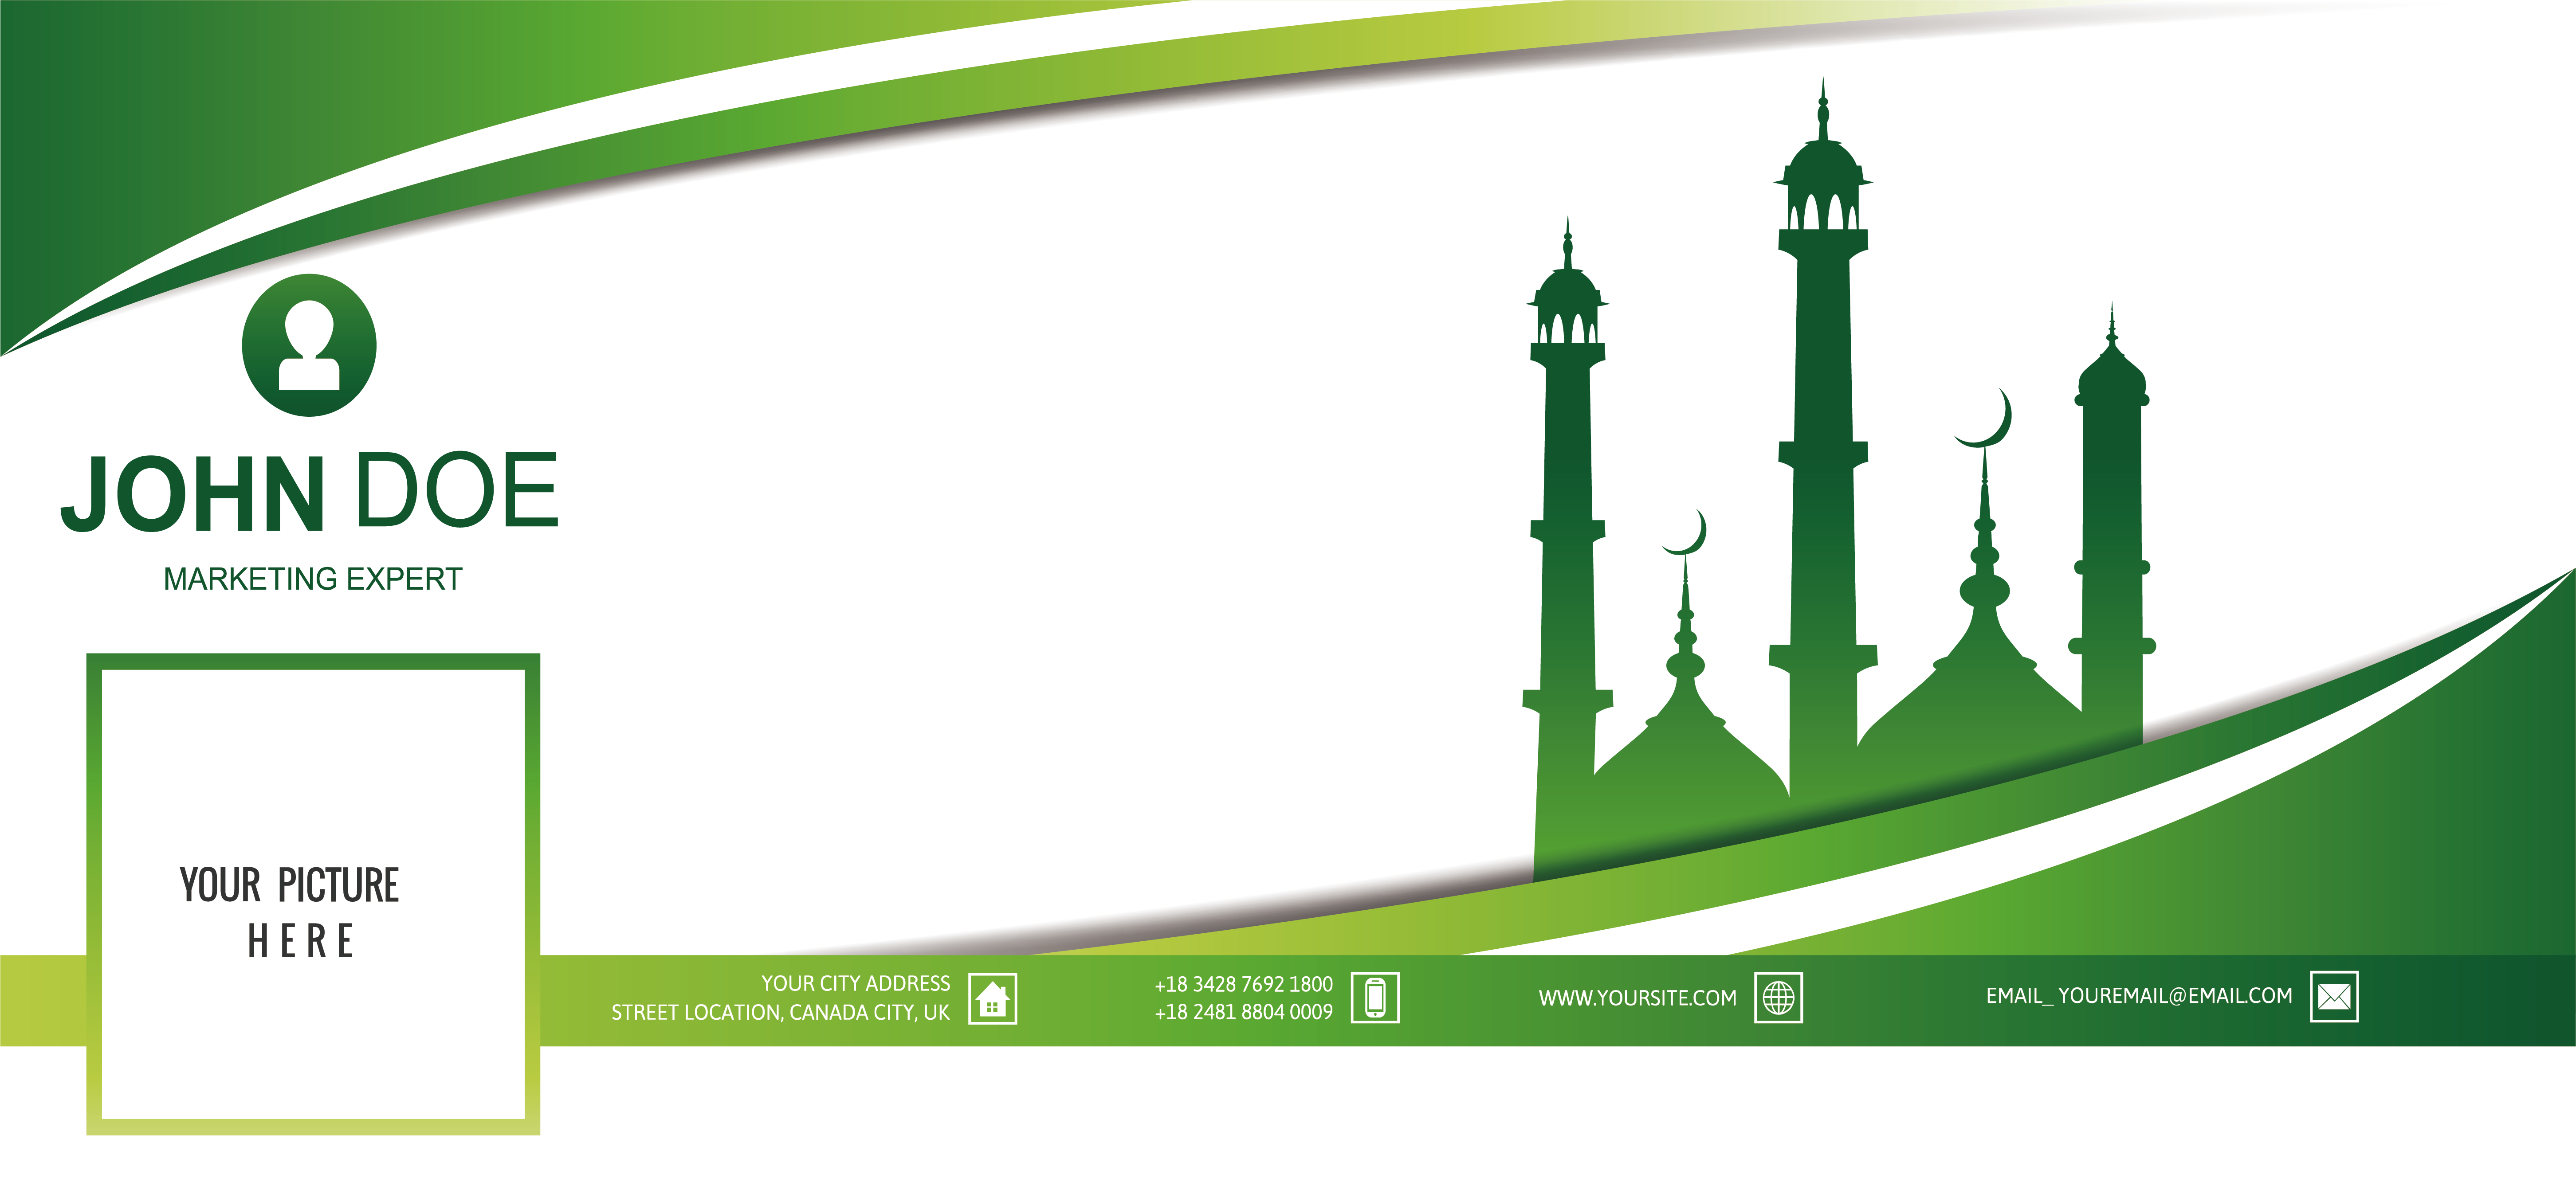 Church Cover Uloom Euclidean Vector Facebook Darul PNG Image